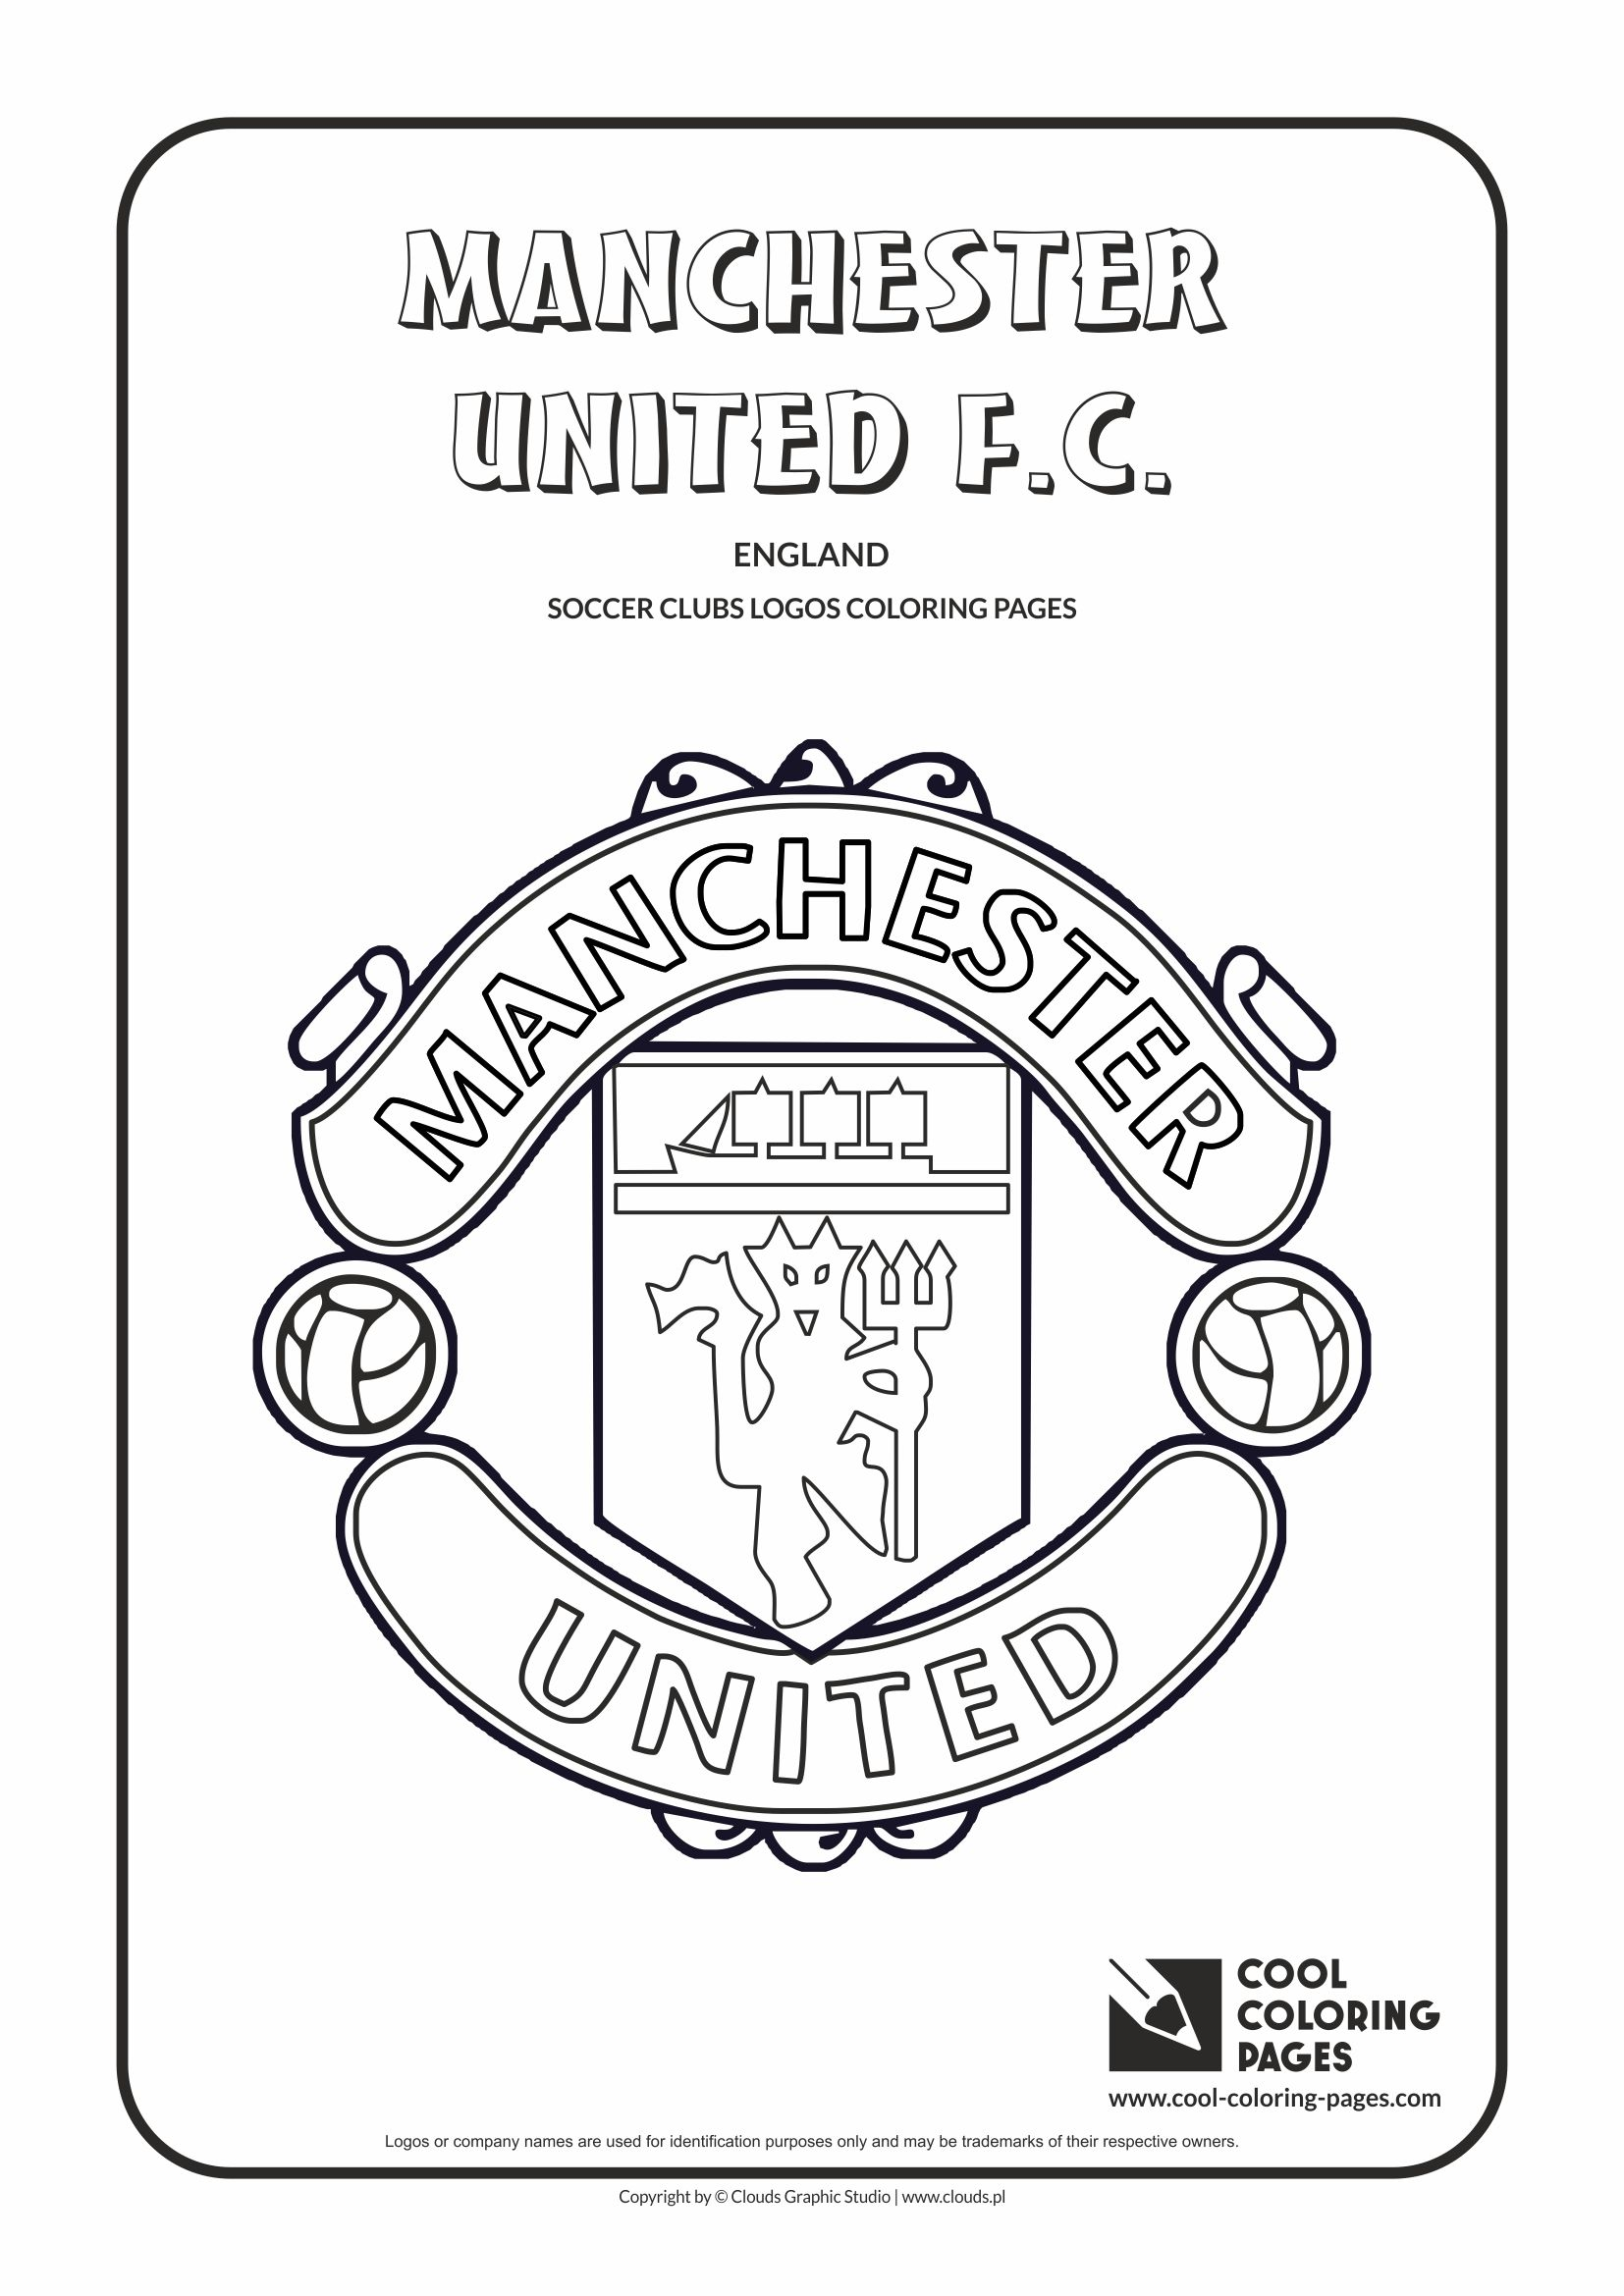 Cool Coloring Pages Manchester